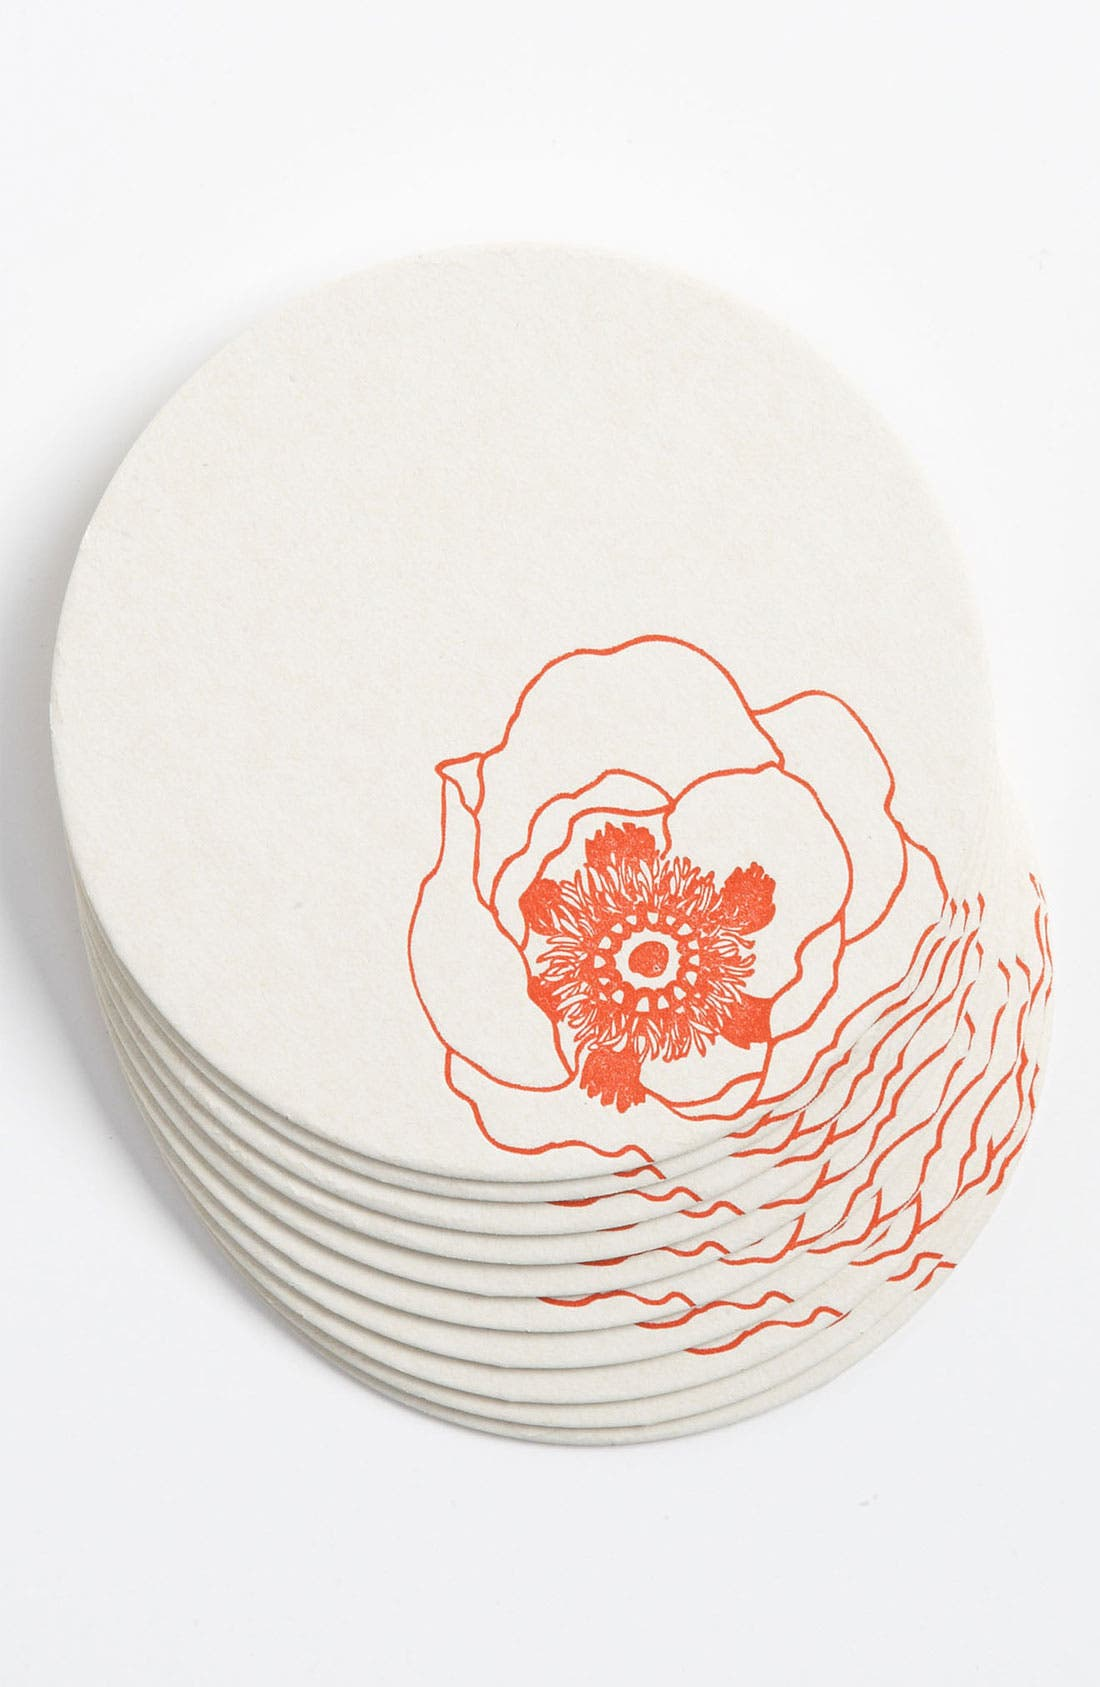 Alternate Image 1 Selected - 'Poppy Flowers' Letterpress Coasters (Set of 10)